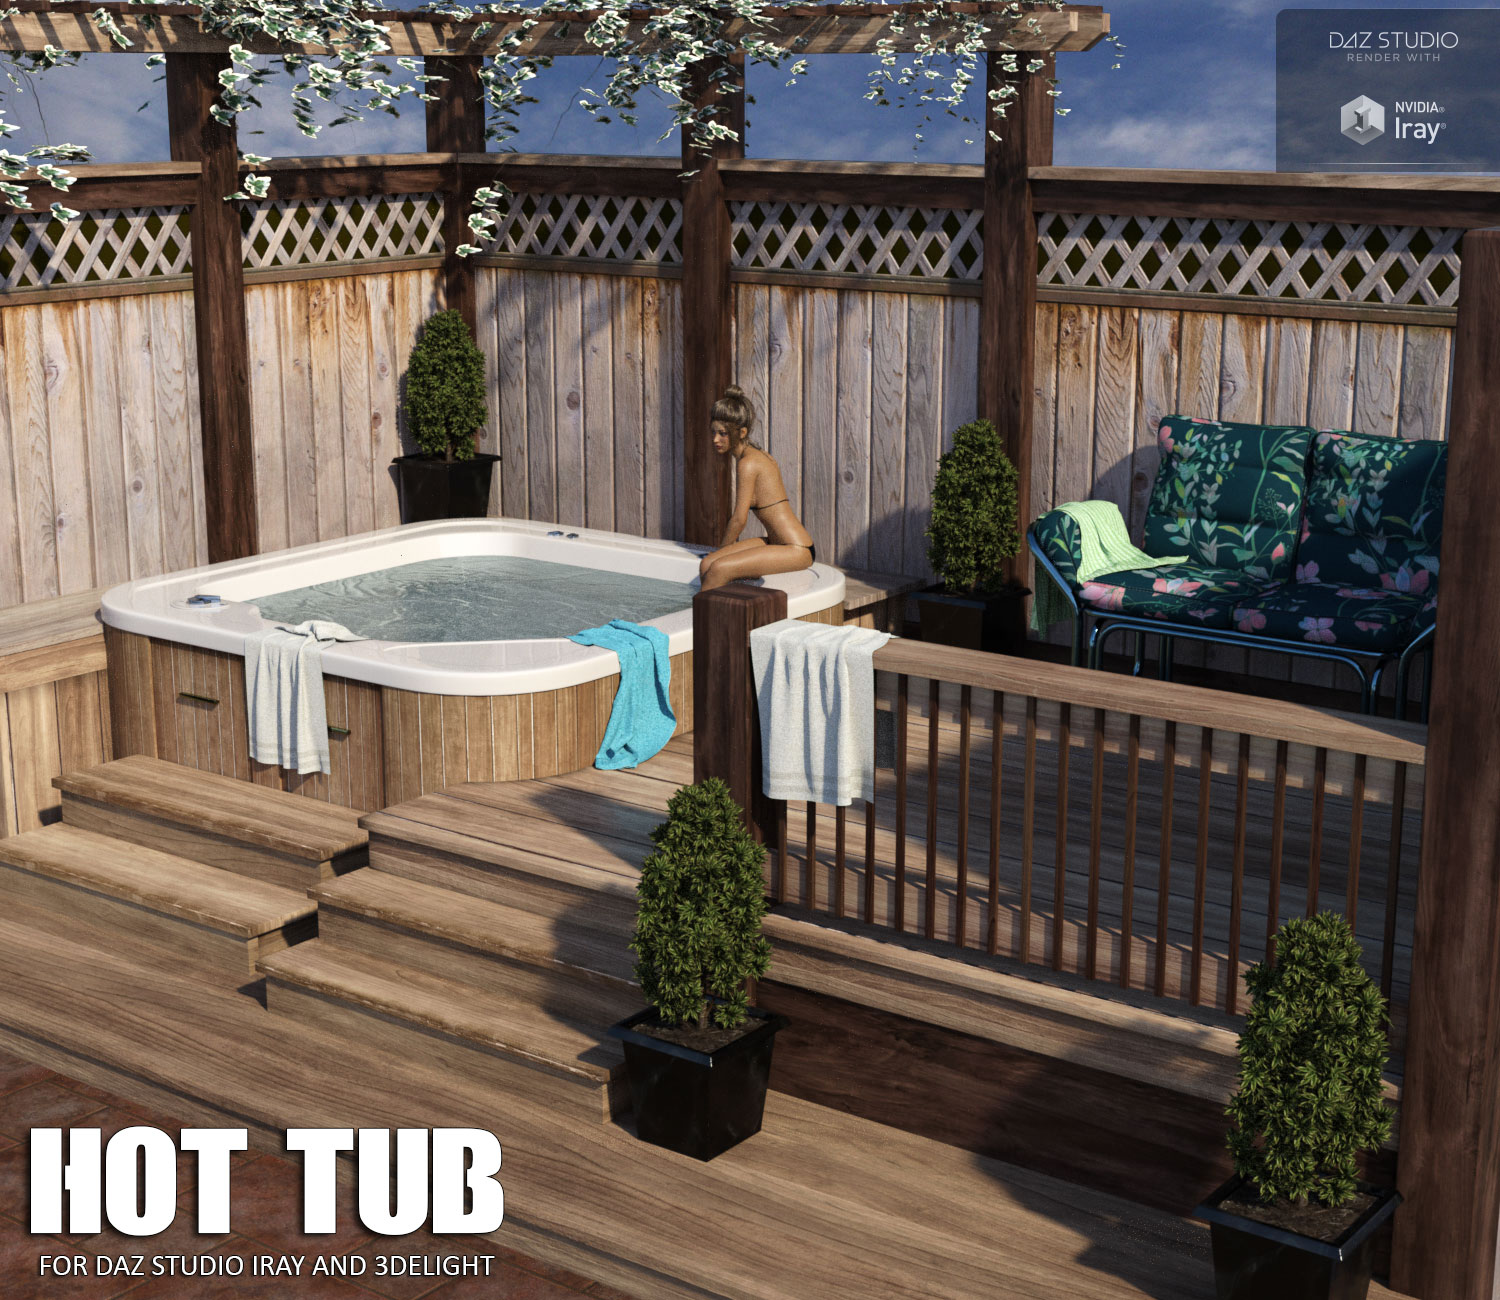 Hot Tub Daz Studio